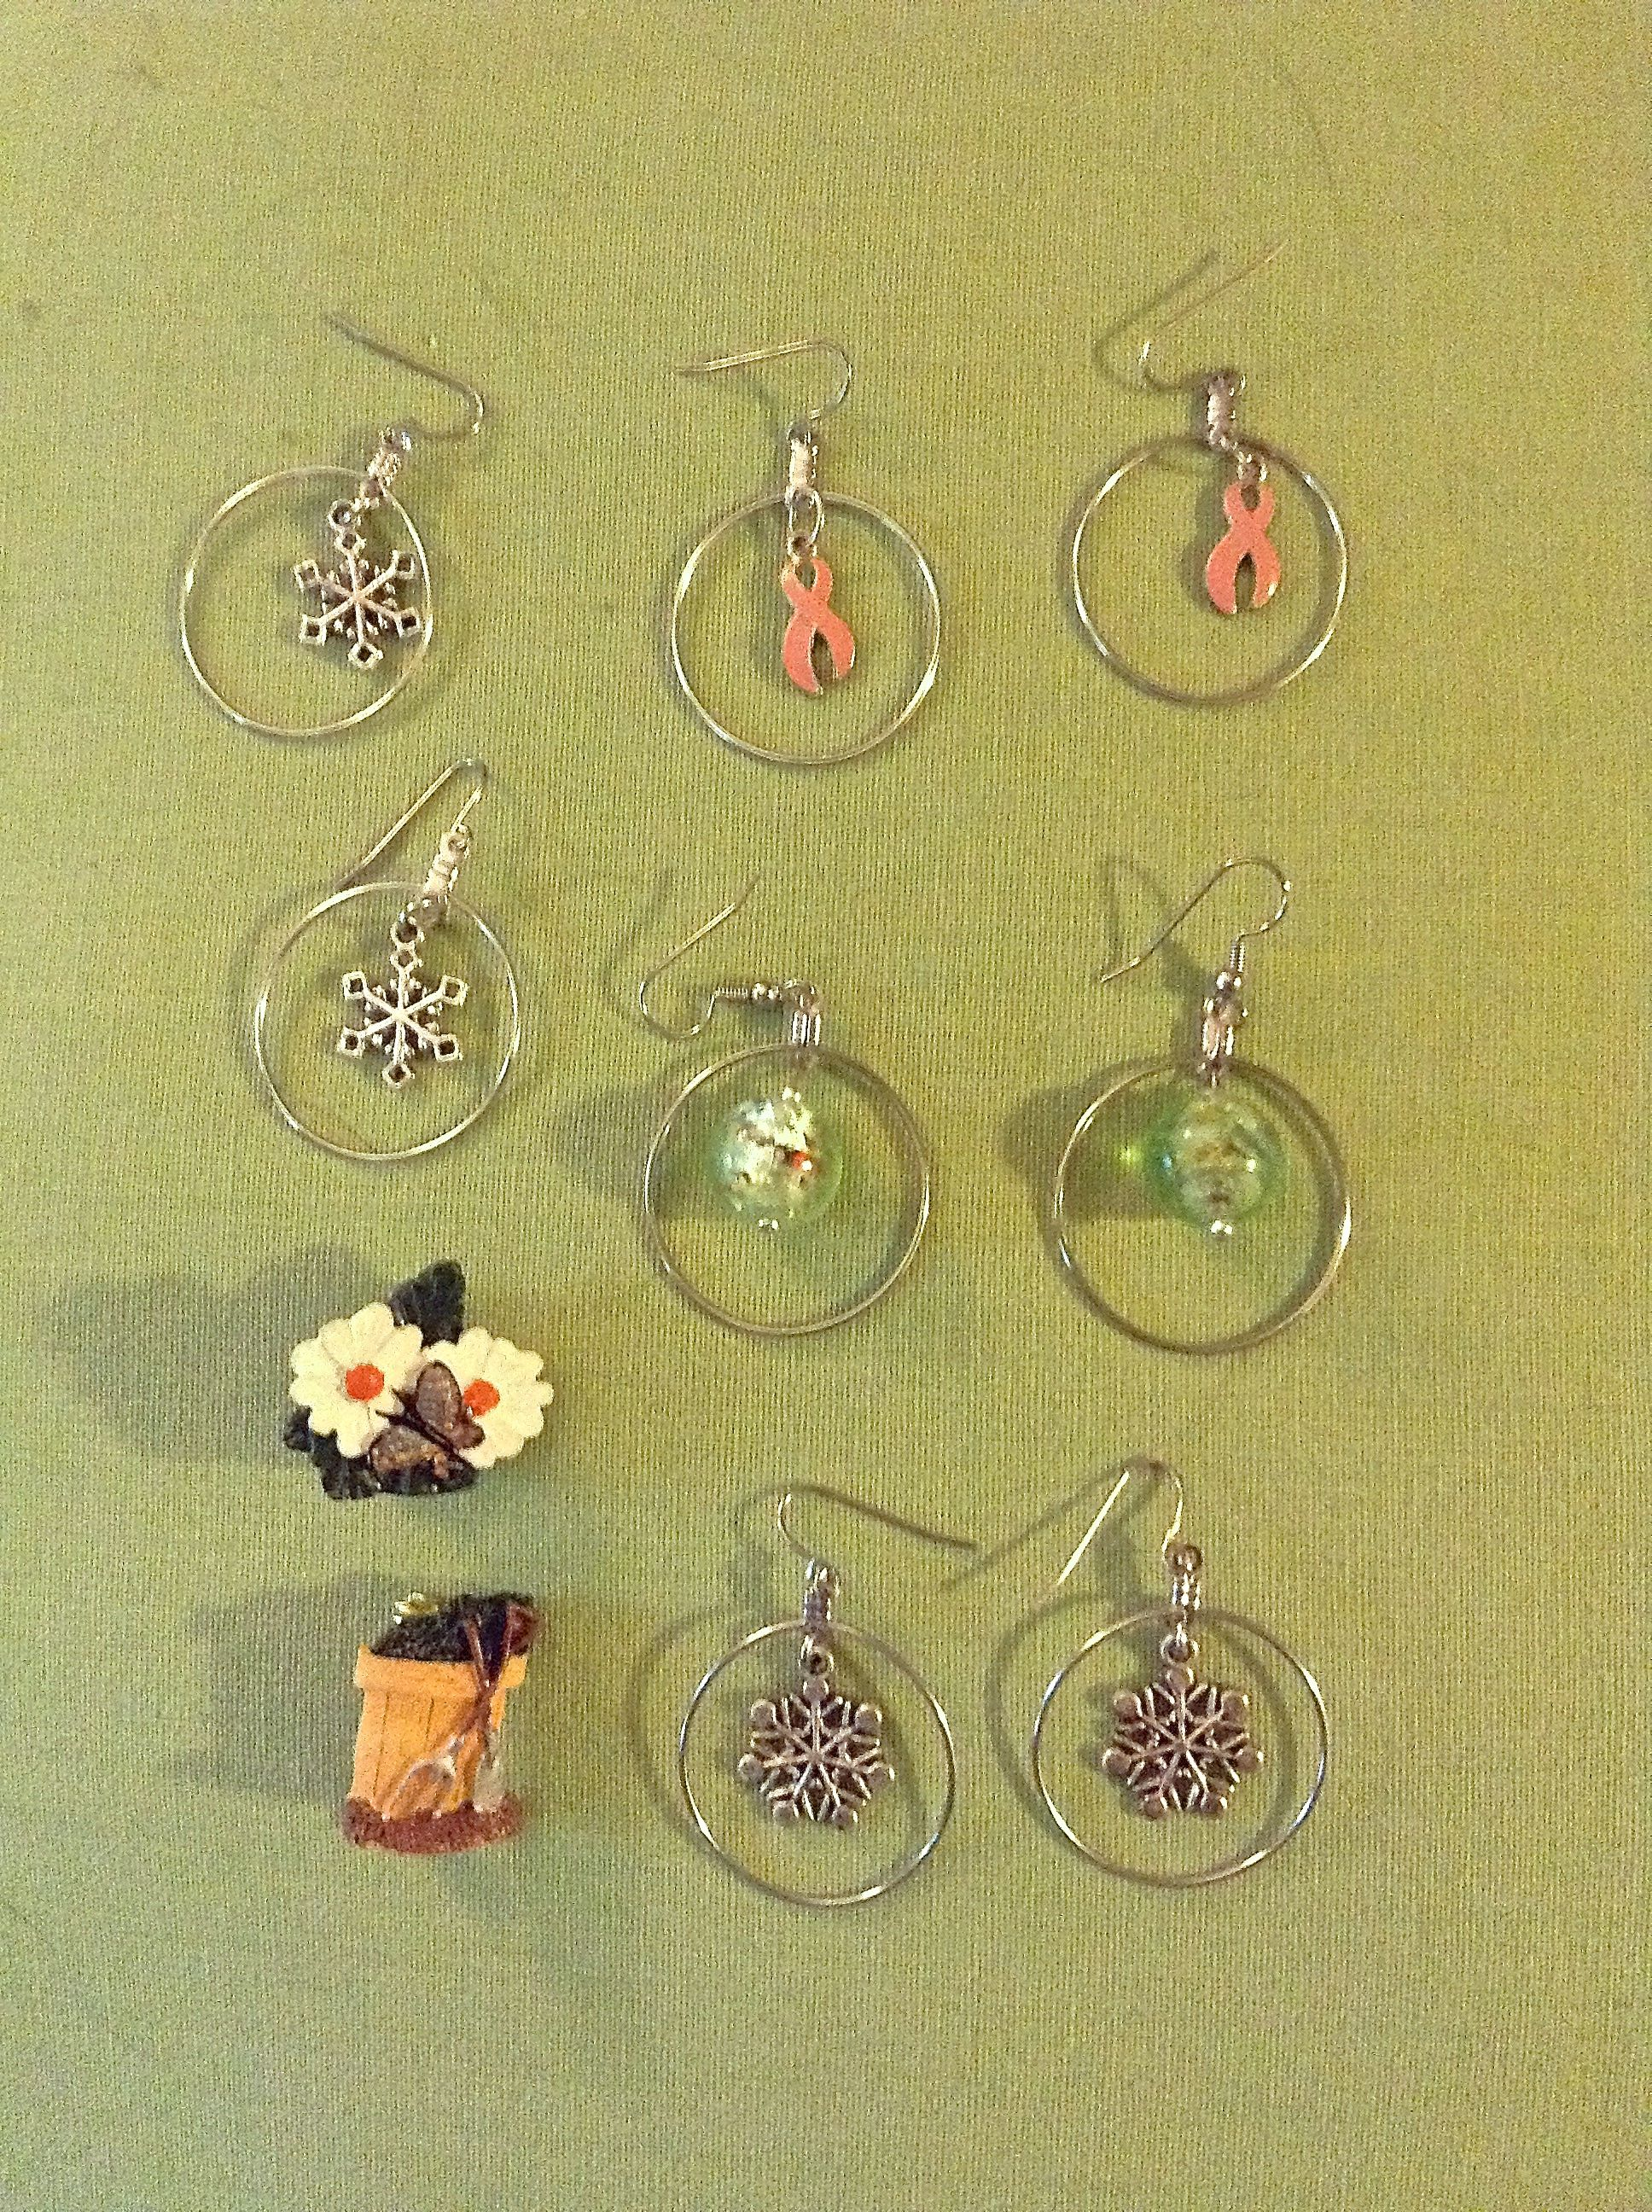 Breast Cancer Awareness earrings and assorted other earrings. (Pins I didn't create, just added pins to the back.